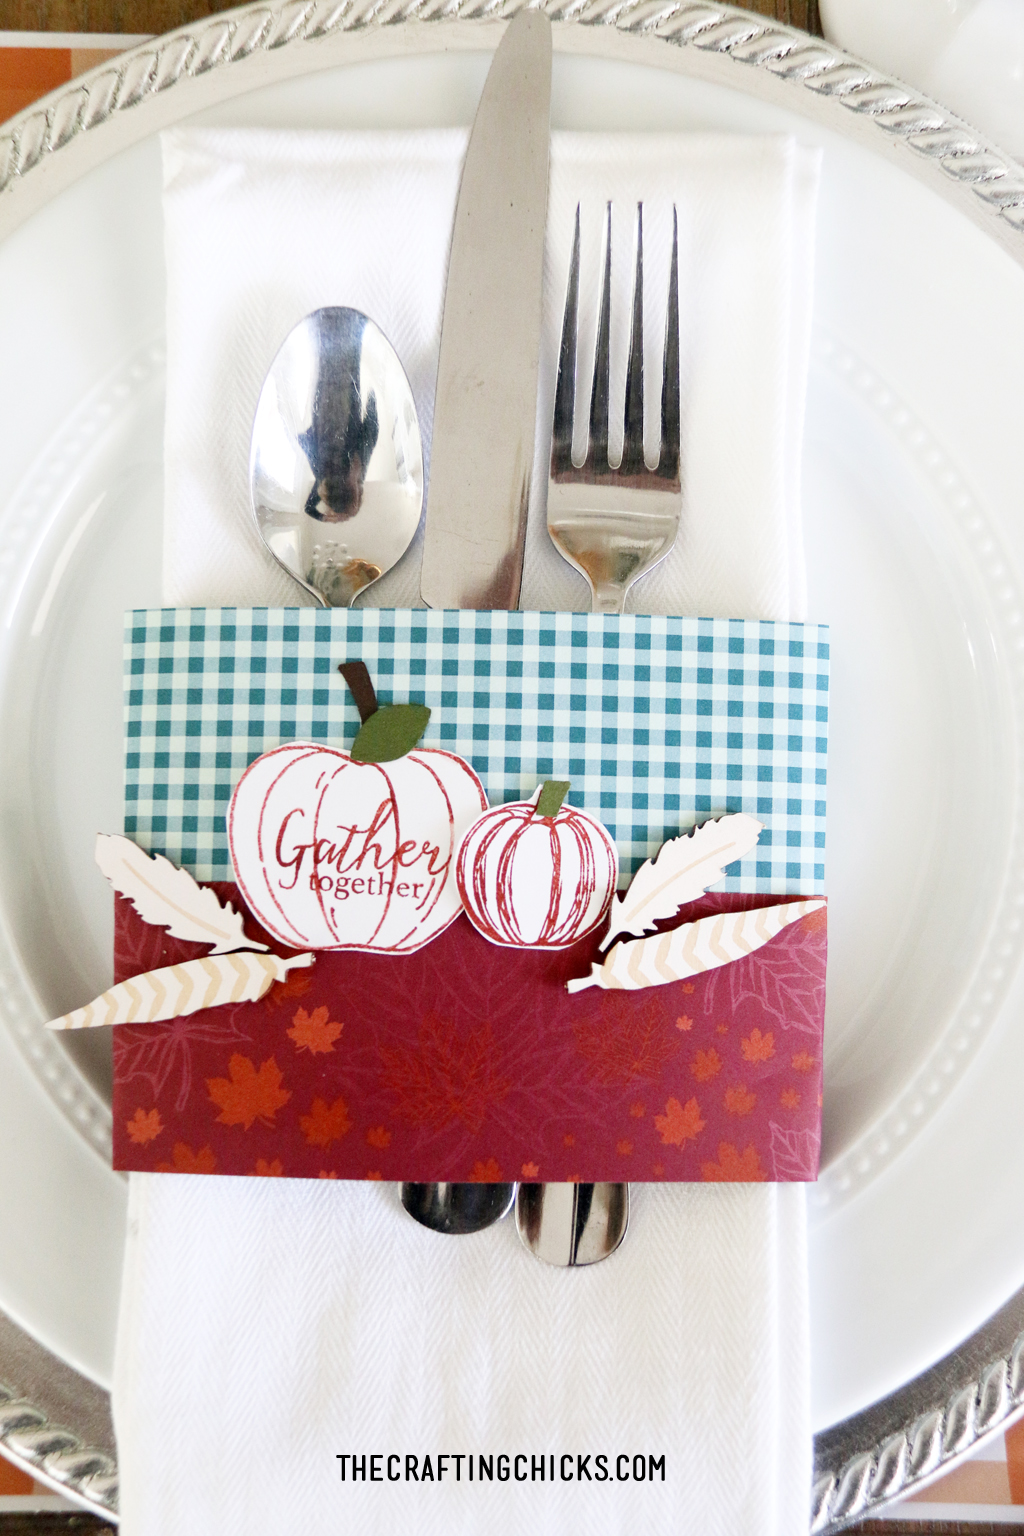 Thanksgiving place setting with orange plaid place mat, white plate, and stamped napkin ring with pumpkins.